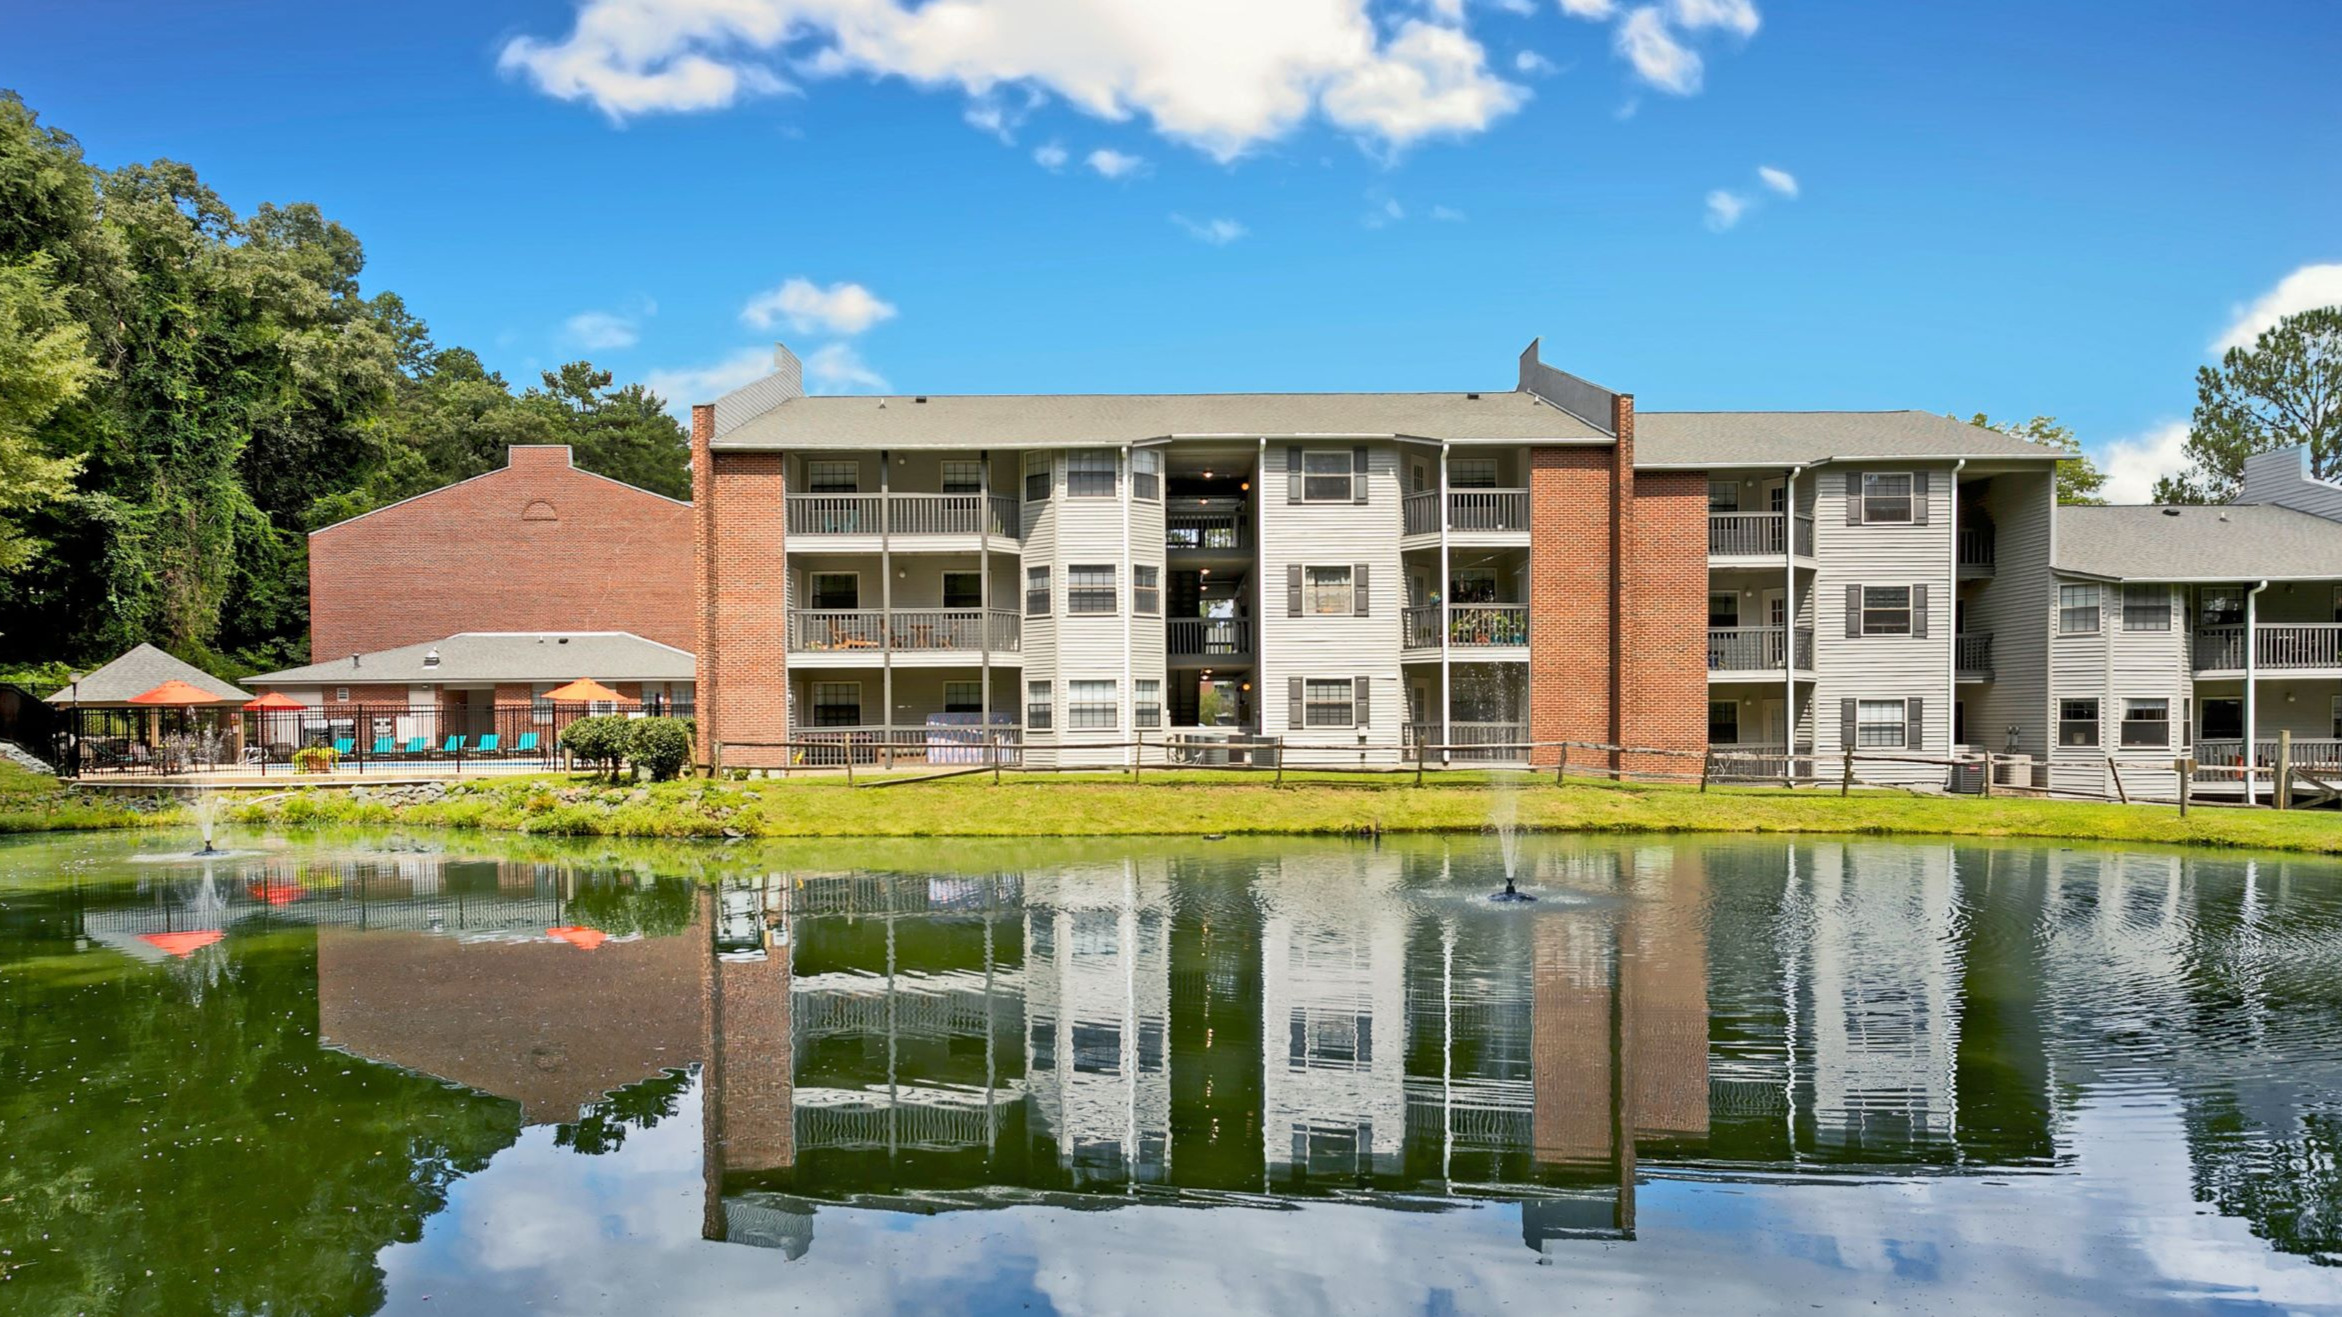 Franklin Woods Apartments reviews | Apartments at 1521 E. Franklin St. - Chapel Hill NC